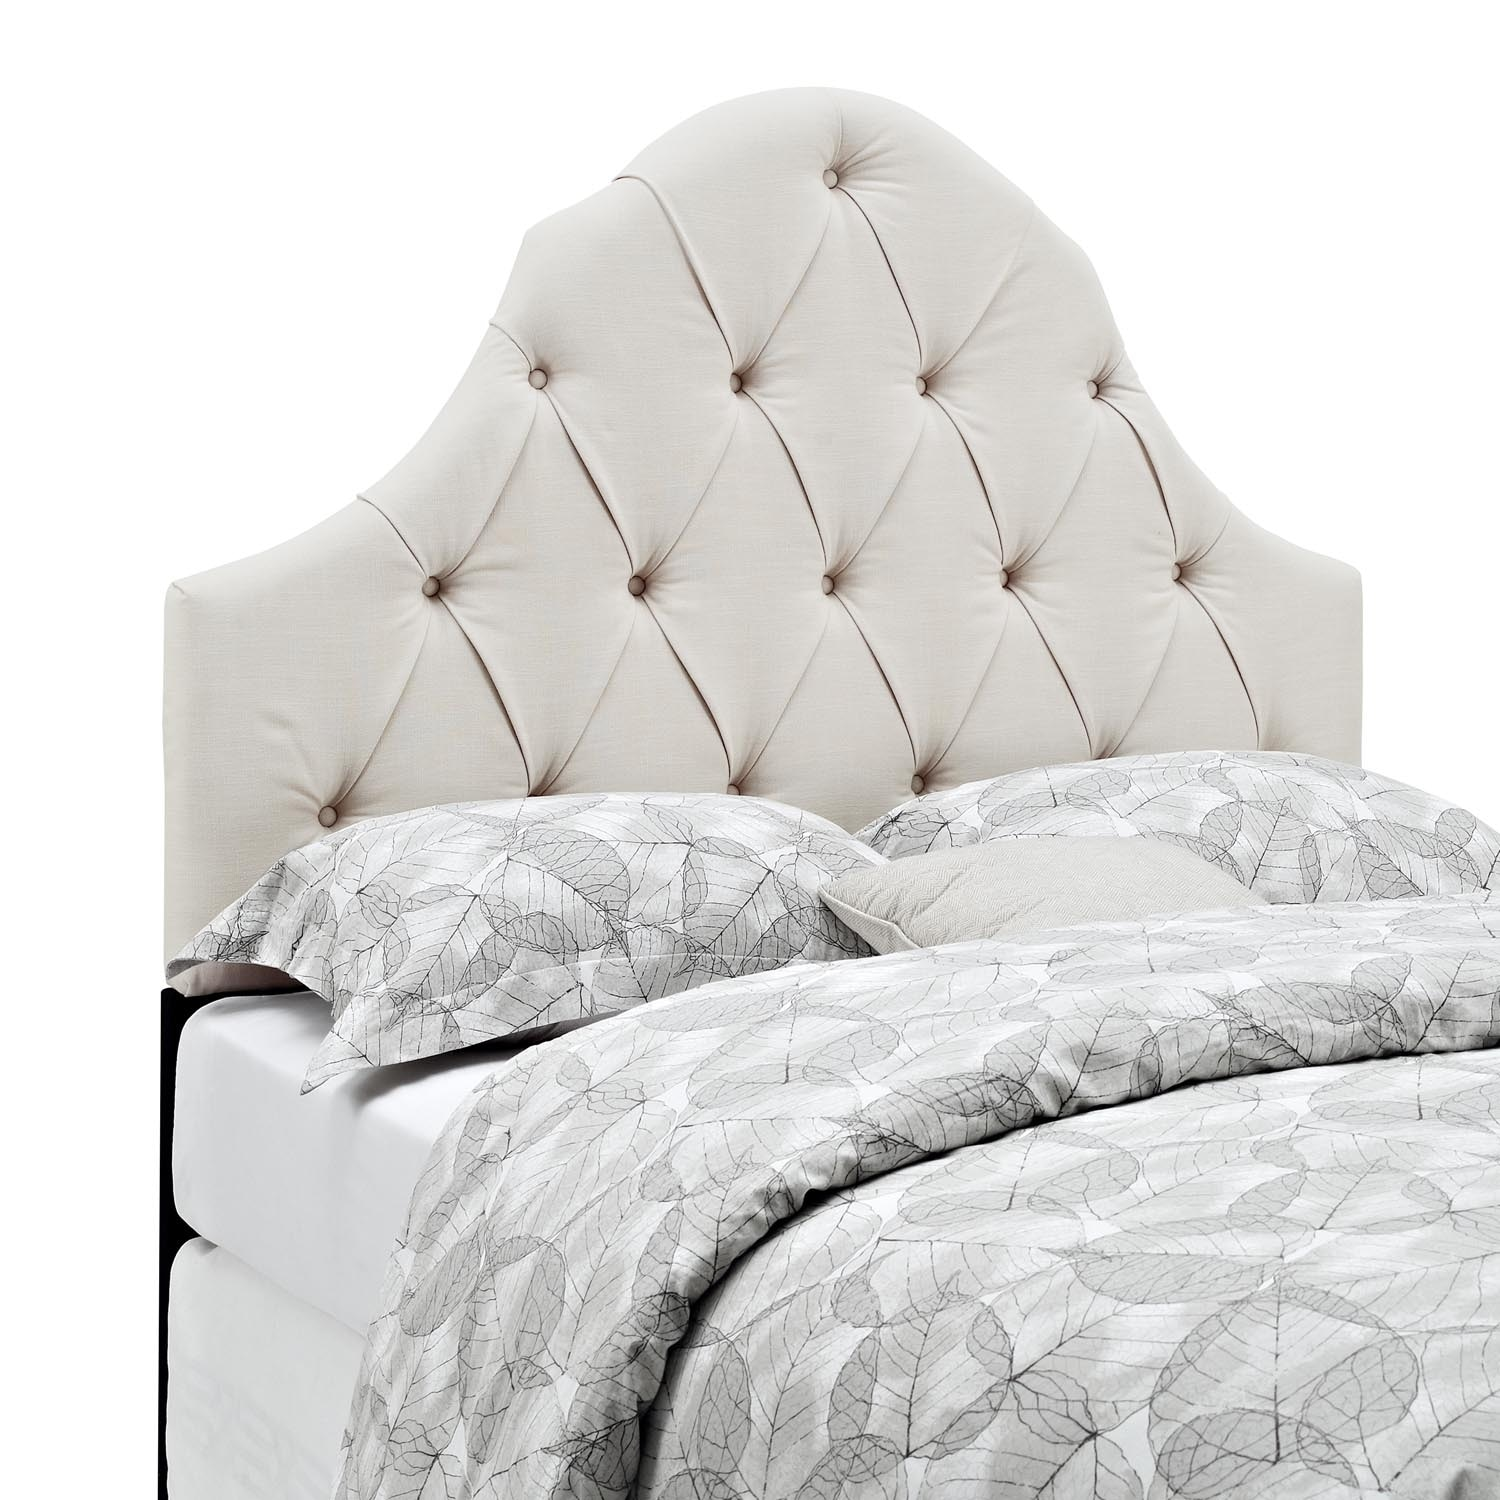 Bedroom Furniture - Castle Peak Full/Queen Headboard - Linen